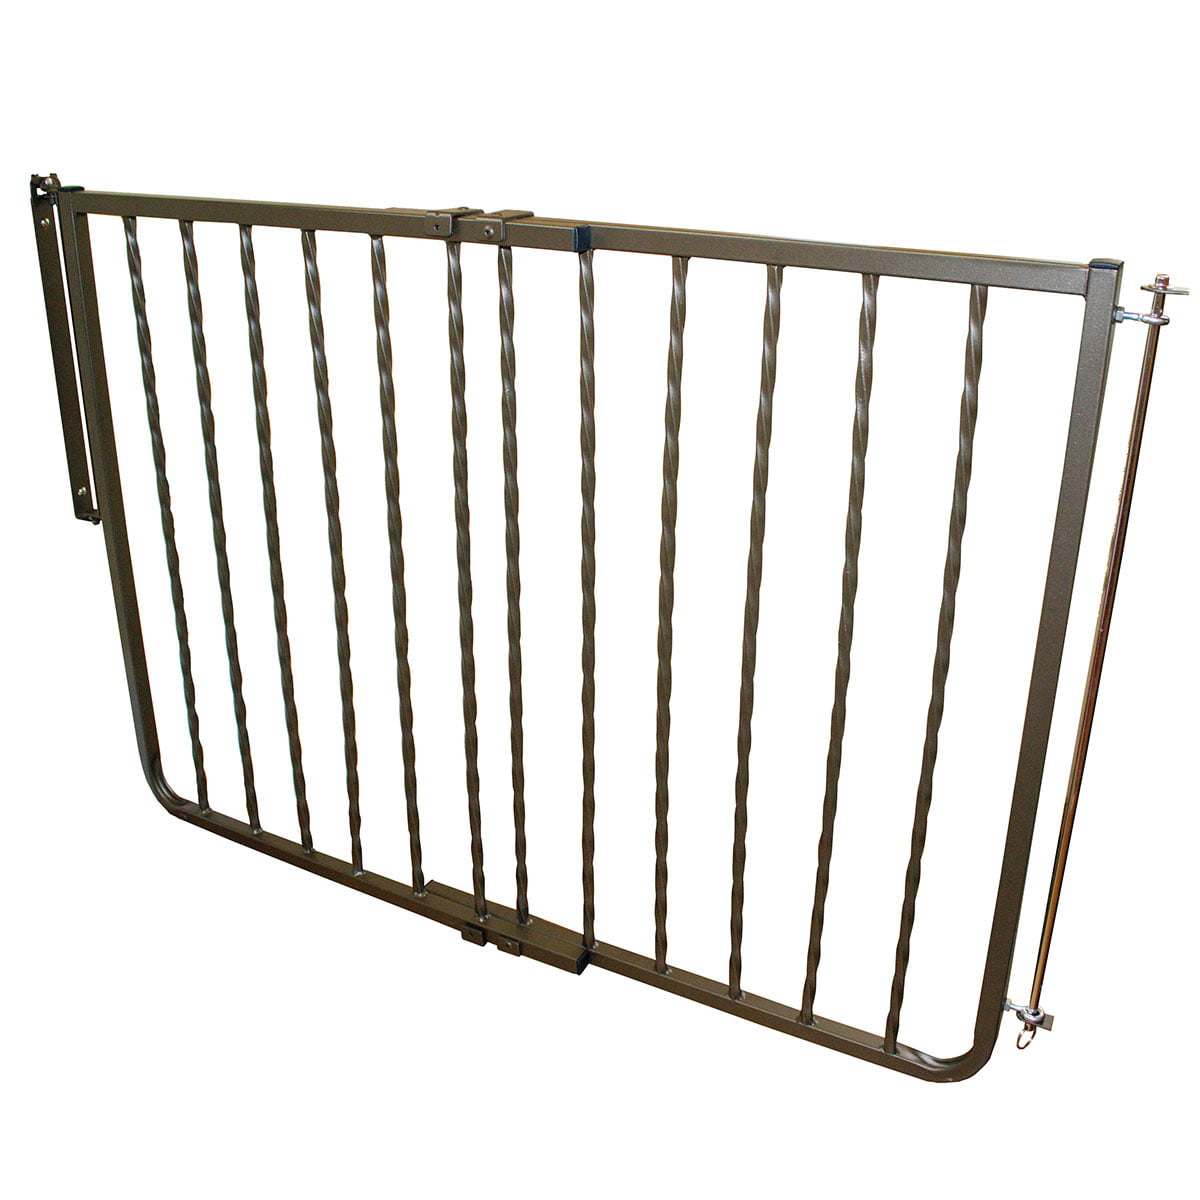 Cardinal Gates Stairway Wrought Iron Decor Gate by Cardinal Gates